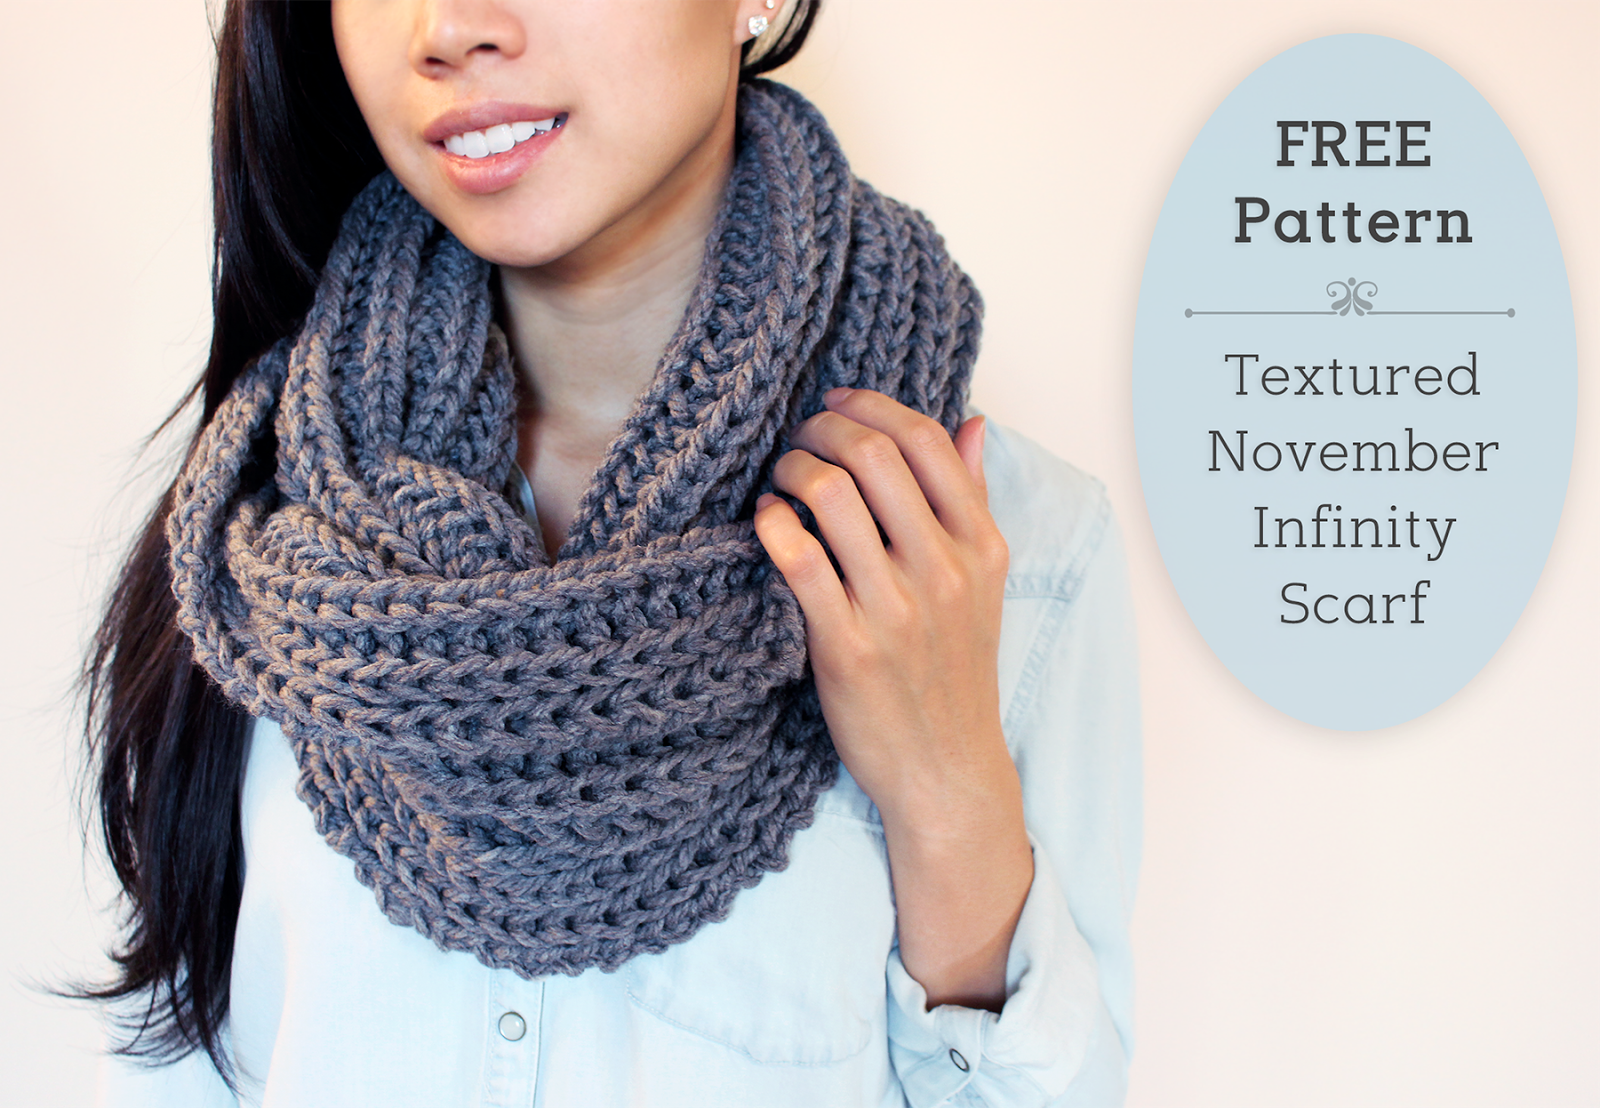 Chunky knit infinity scarf free pattern easy beginner chunky knit infinity scarf free pattern easy beginner knitting project knitting crocheting pinterest beginner knitting projects free dt1010fo